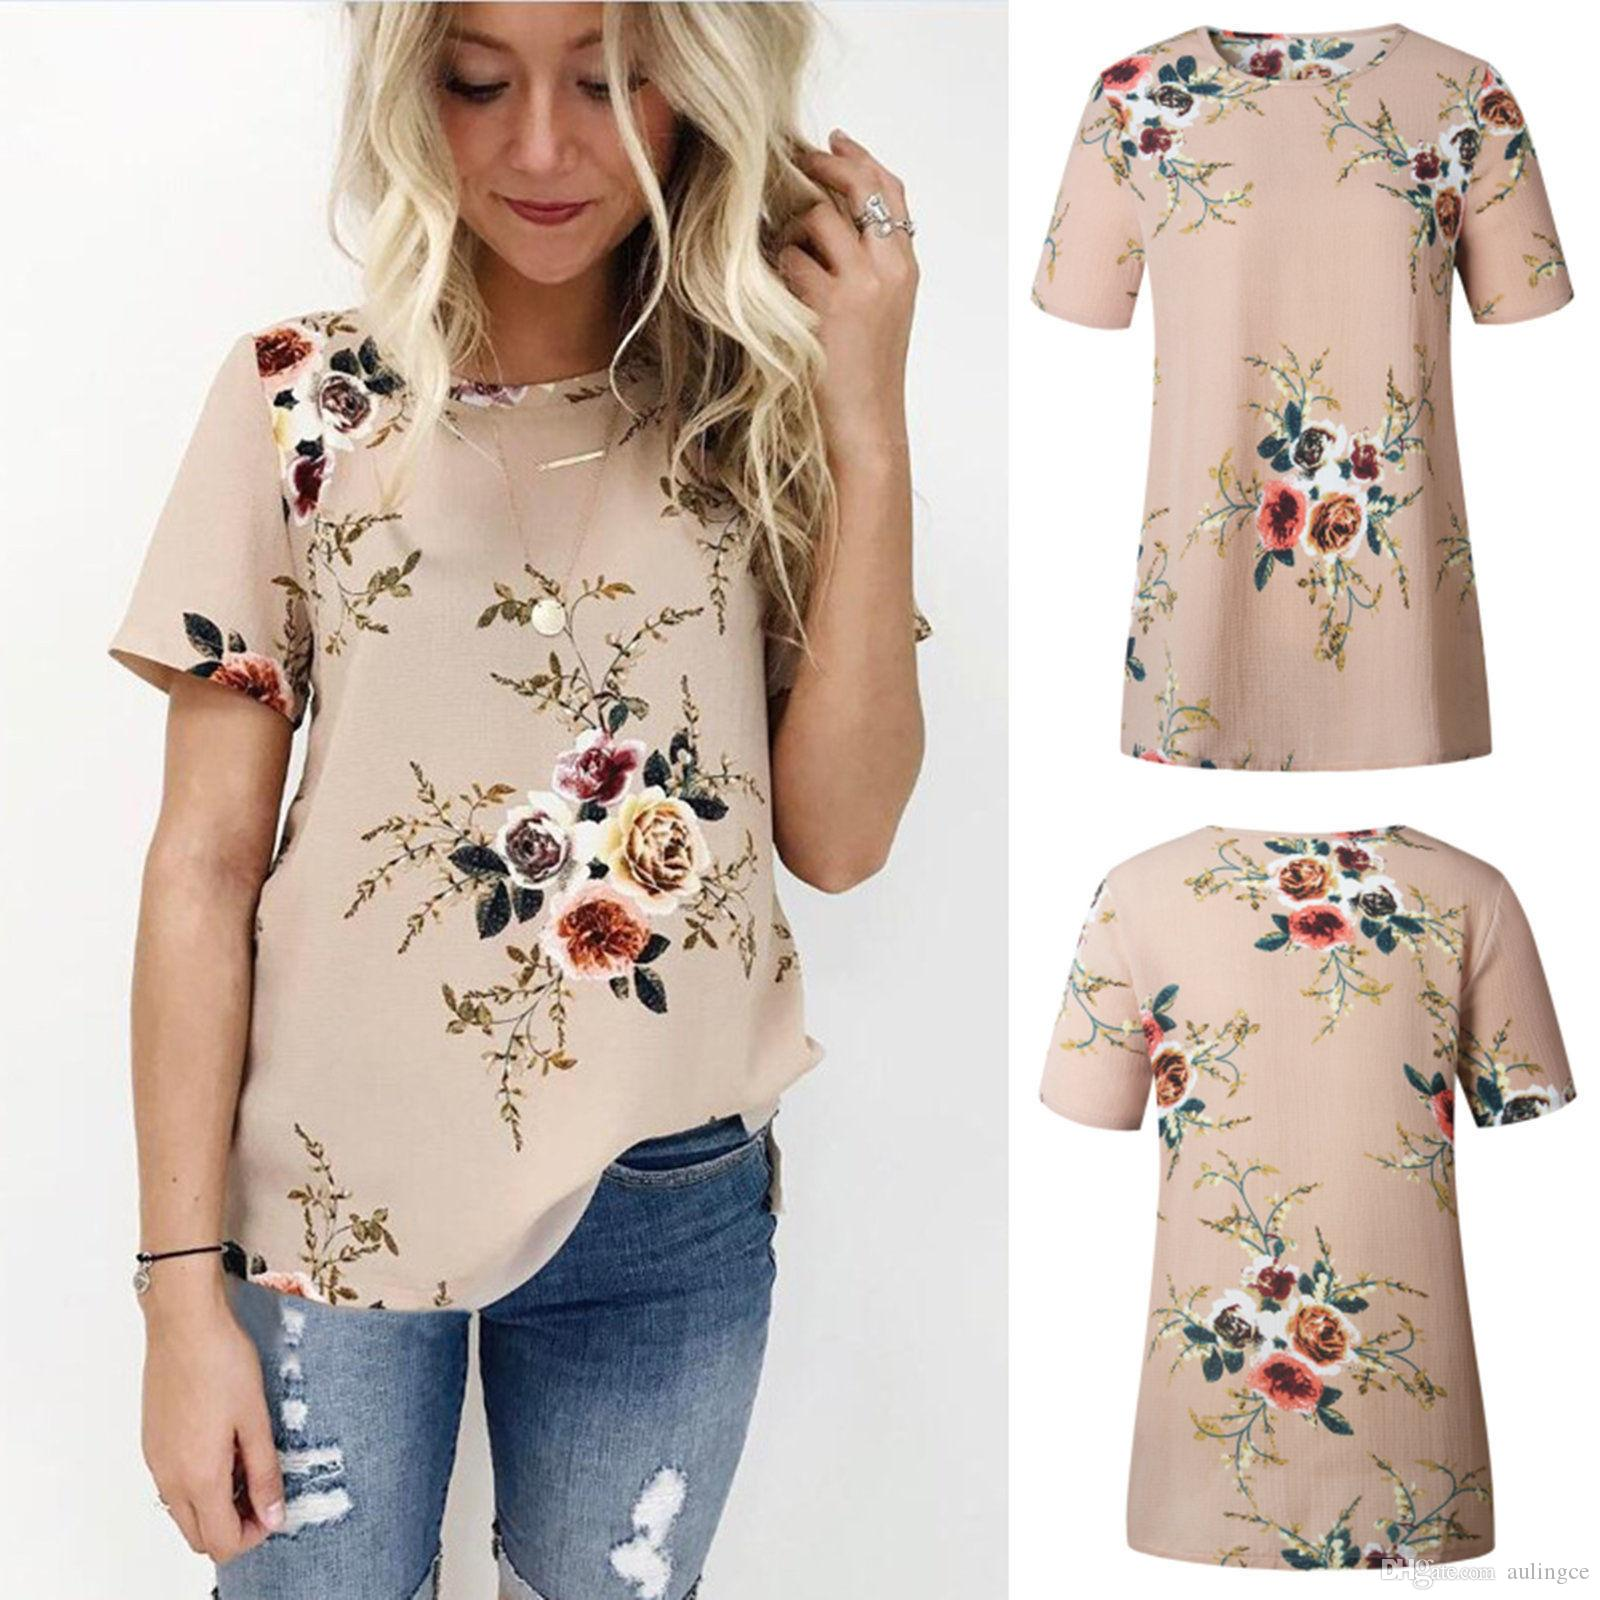 5ea38012a97 Summer Floral Print Chiffon Blouse 2017 Women Blouses O Neck Short Sleeve Blouse  Shirt Girl Tops Blusas Feminina Camisetas Mujer Fun Shirt Designs For T ...